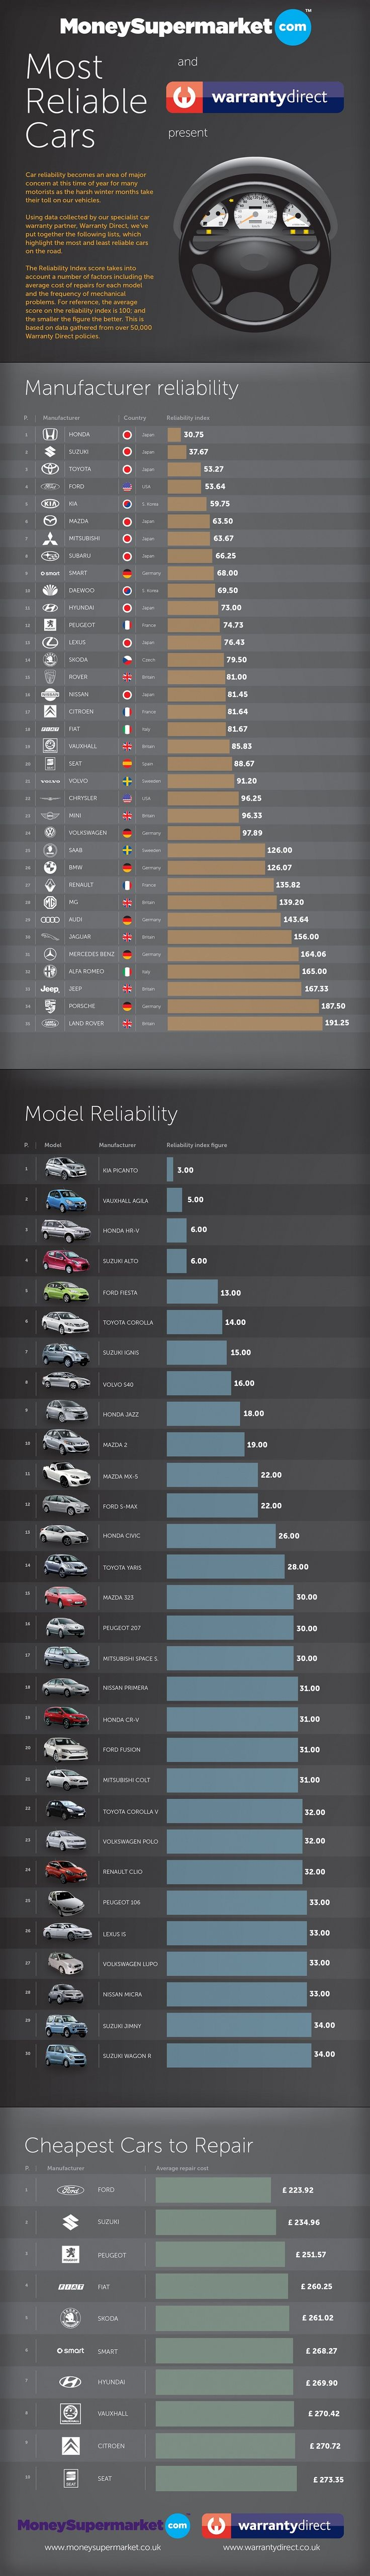 ‎[Infographic] Most Reliable Cars on the Road